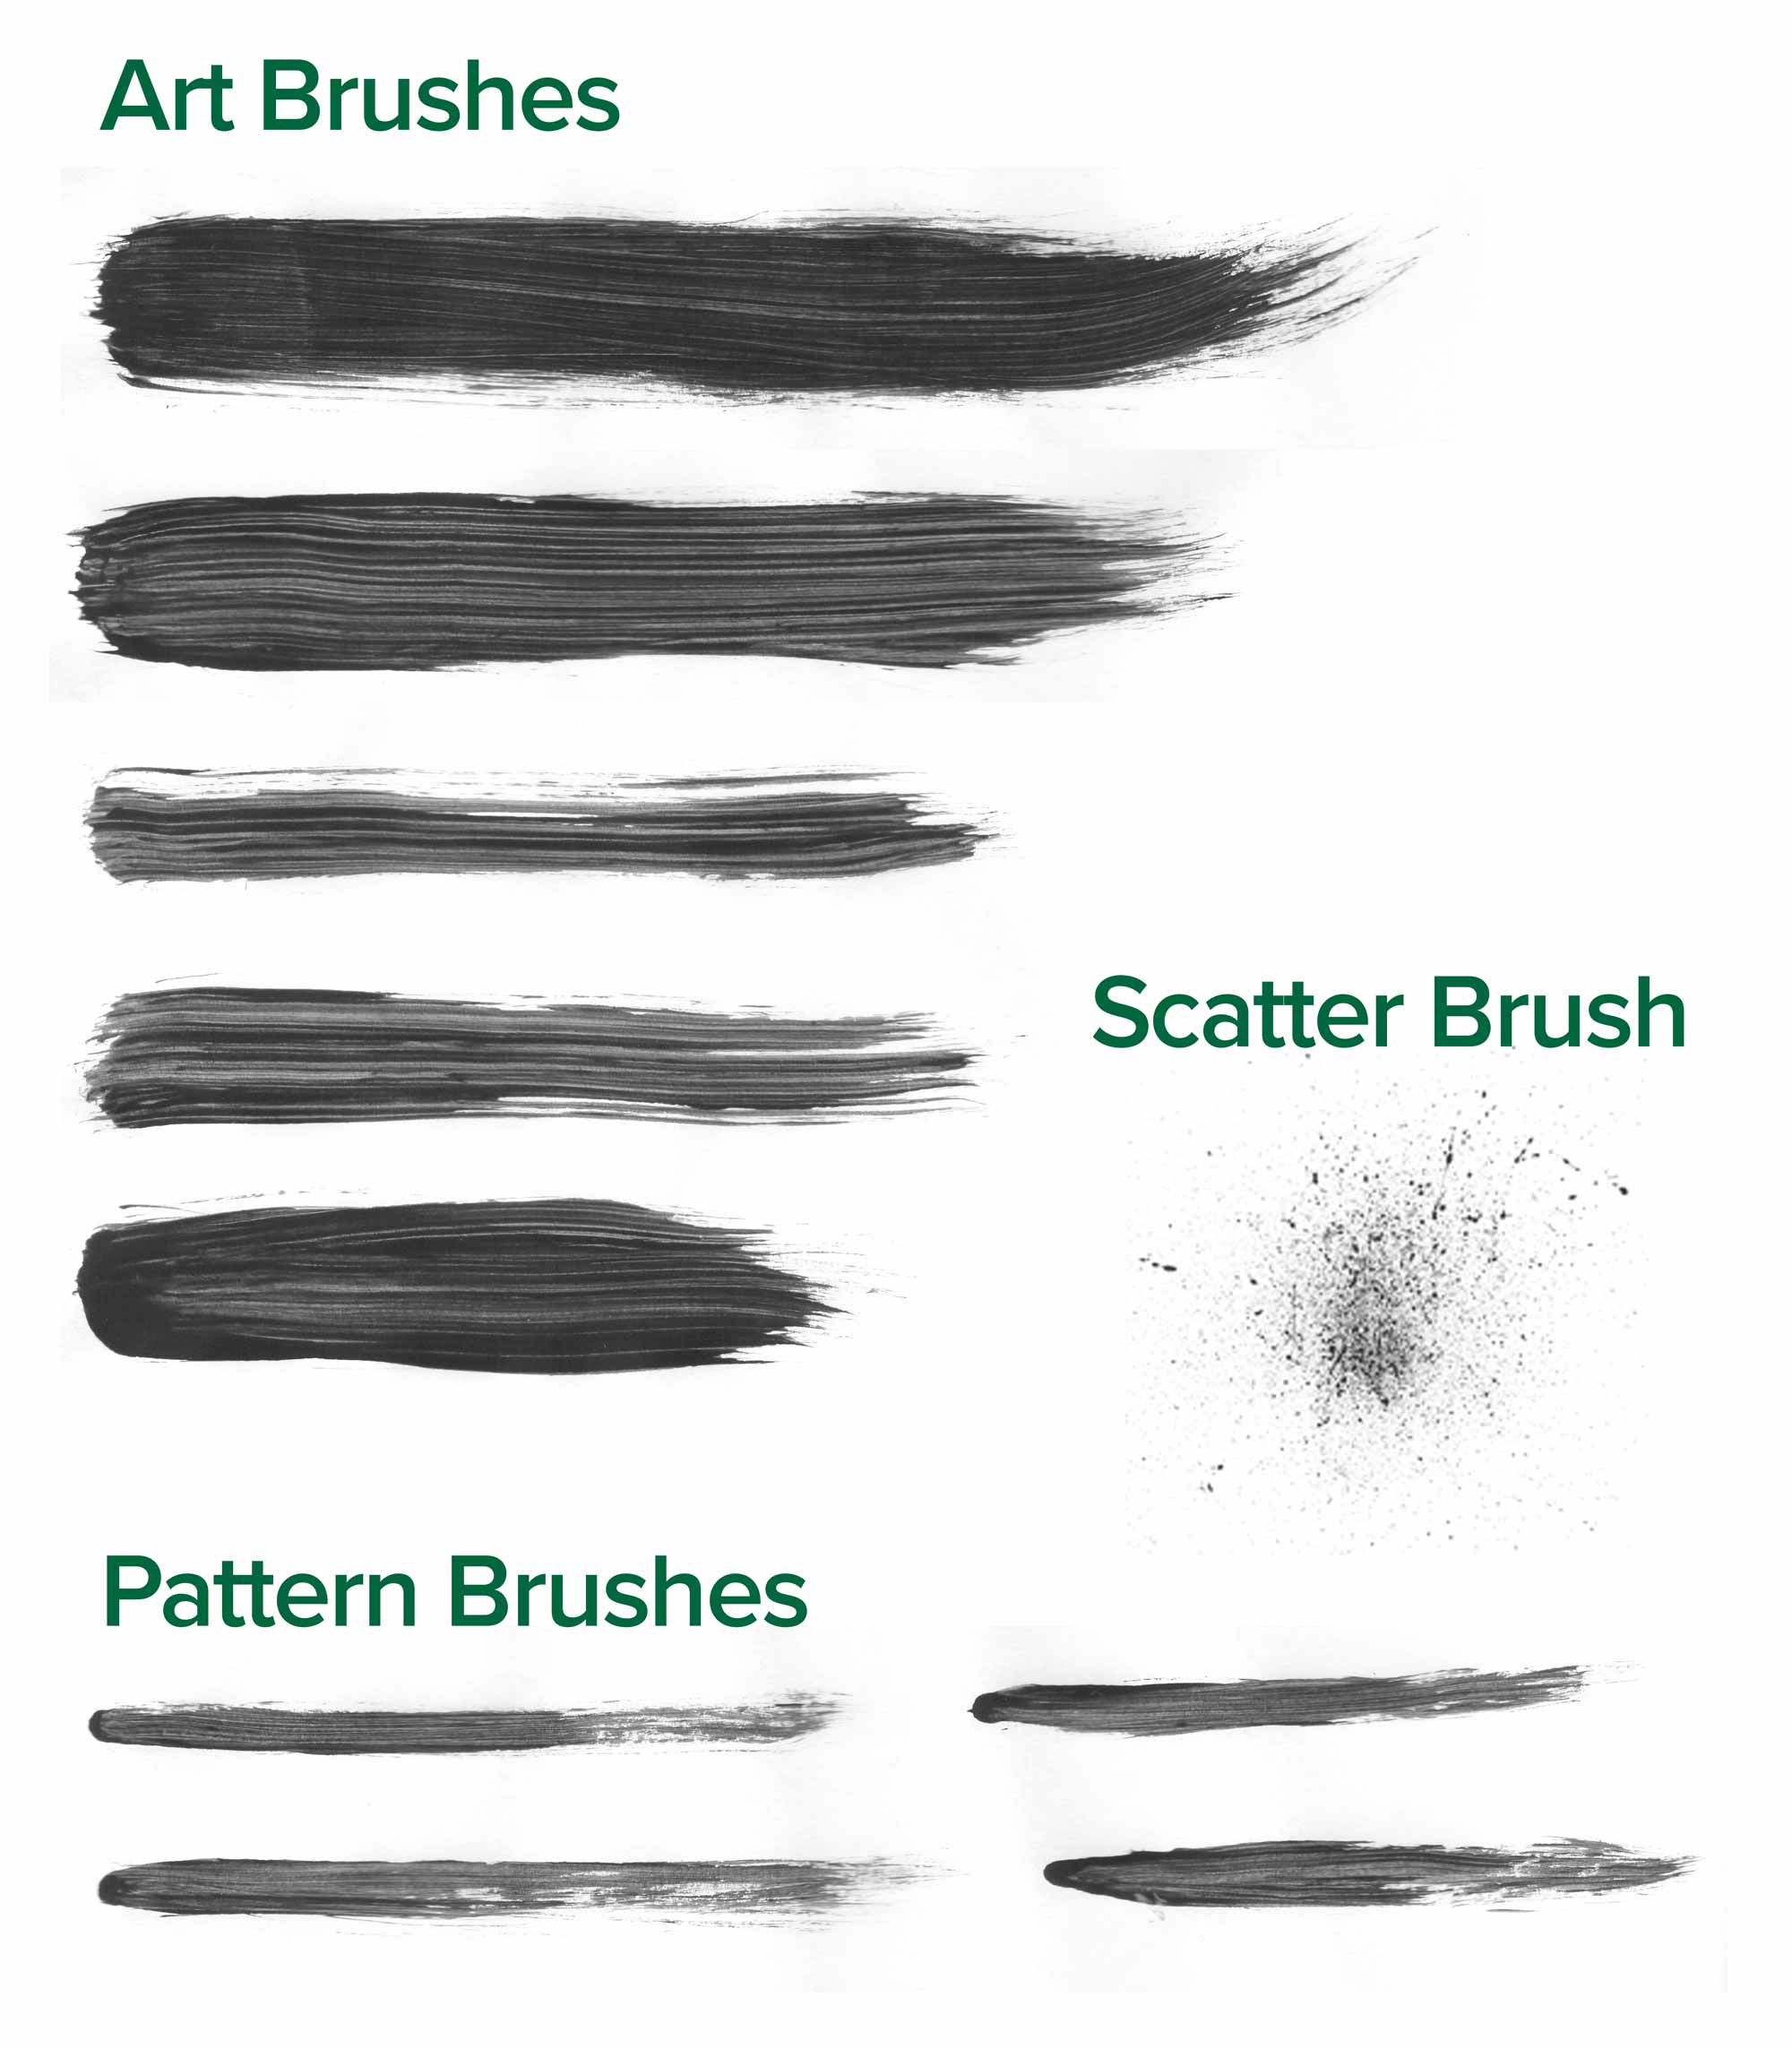 art-pattern-and-scatter-brush-examples